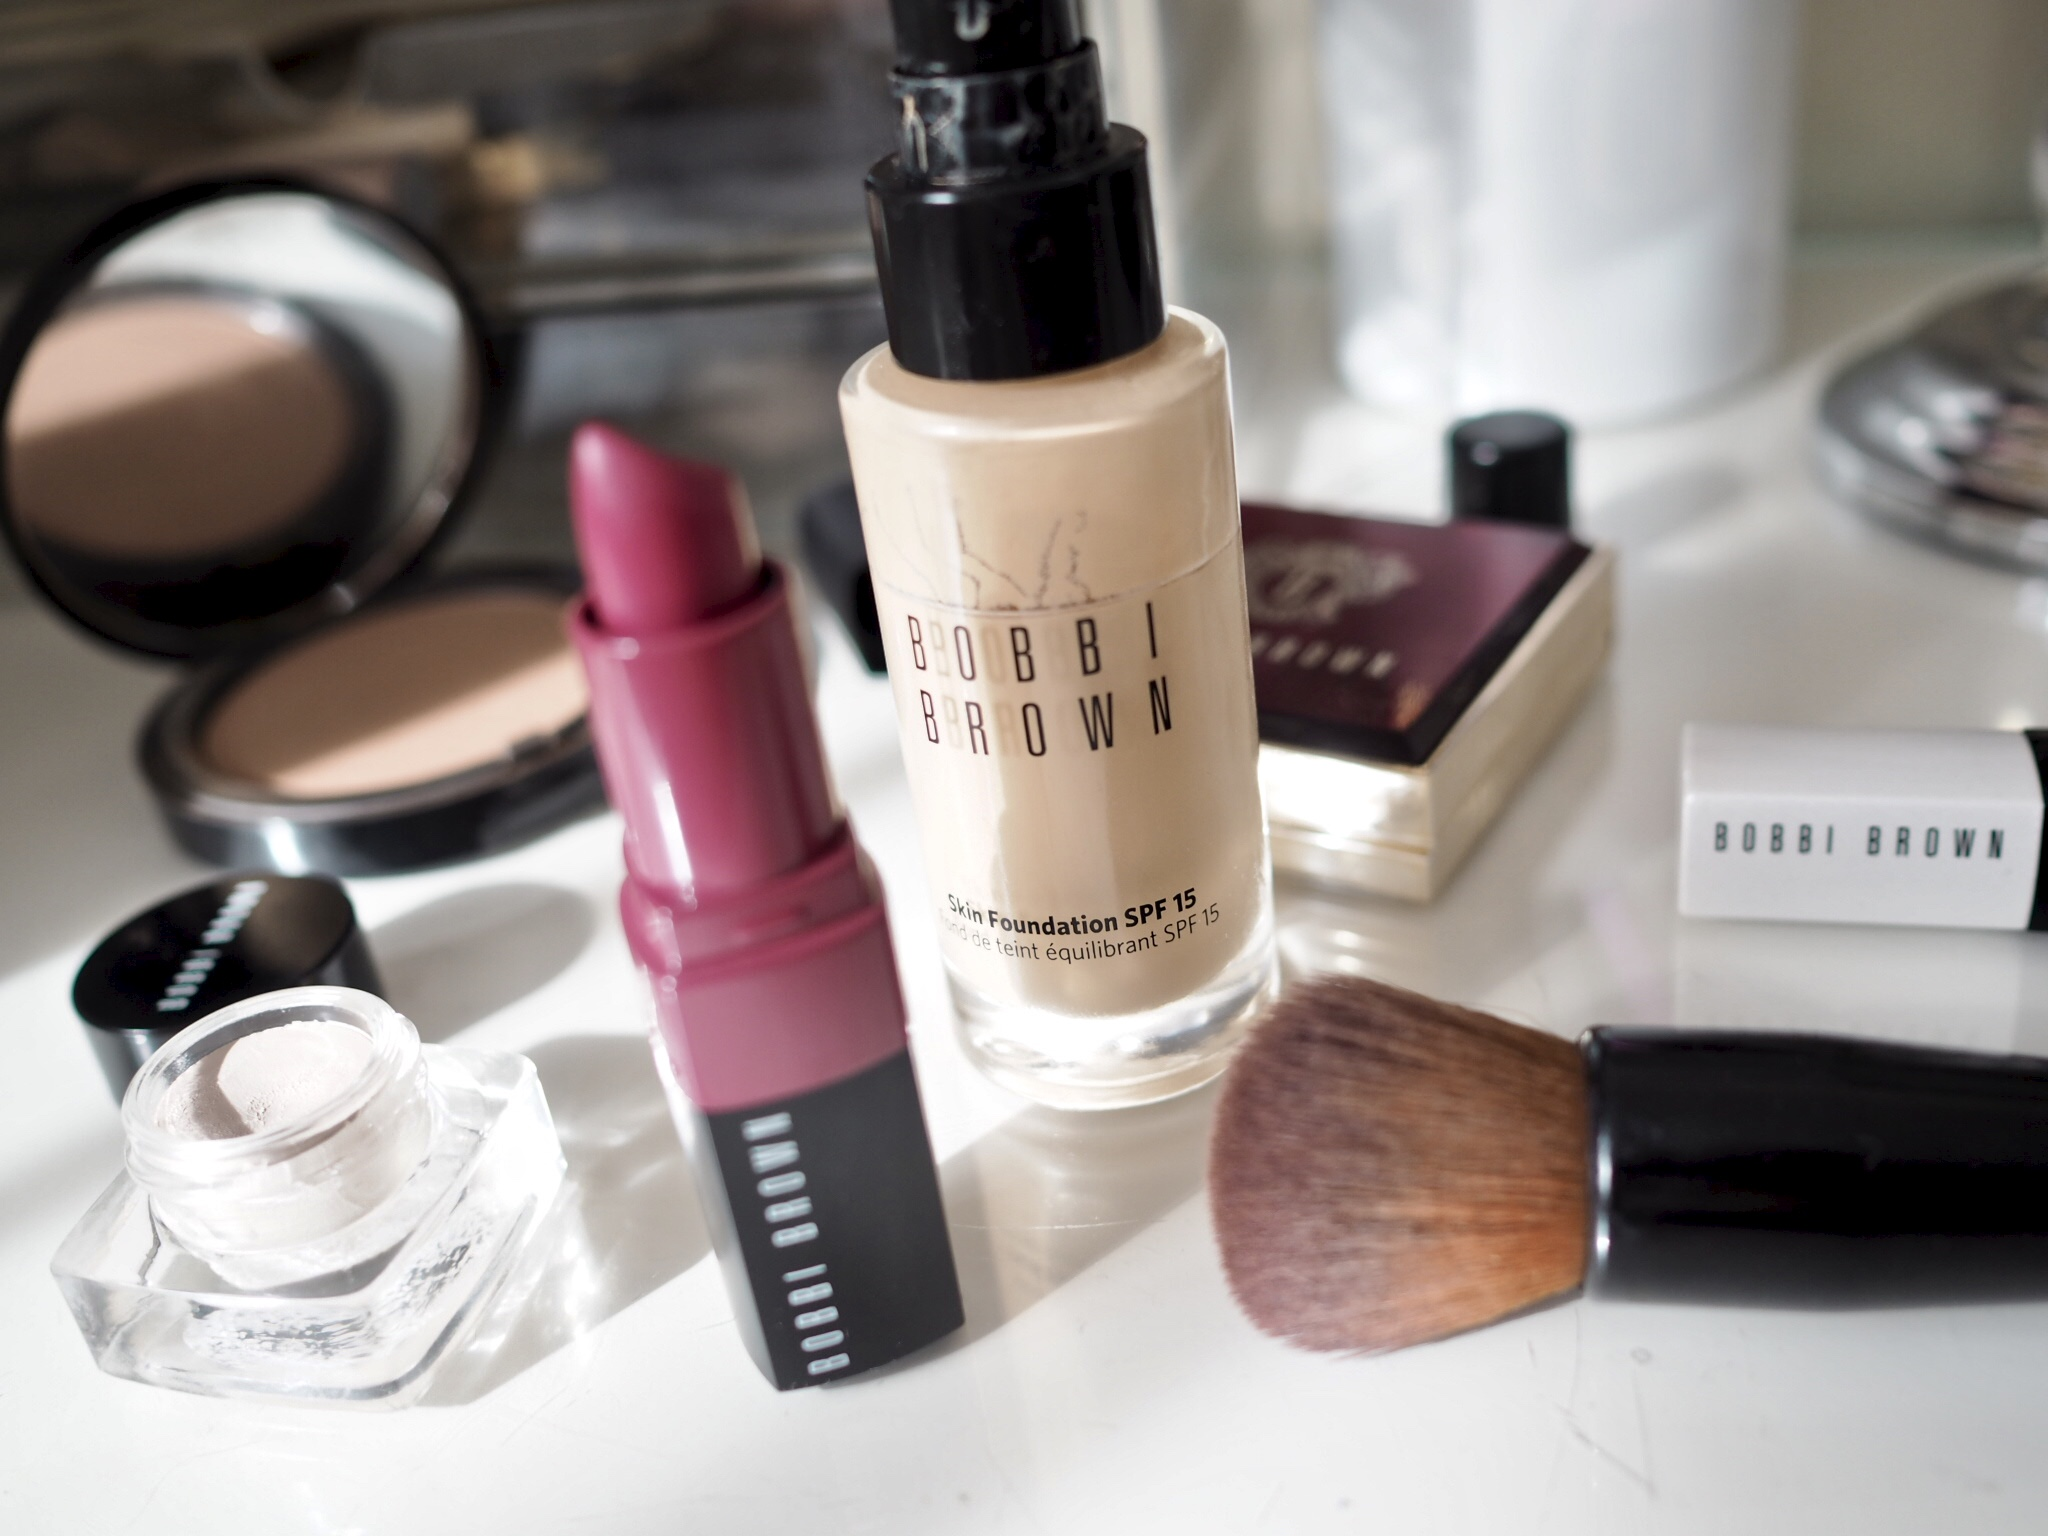 Bobbi Brown Black Friday Comes Early! ~ Chronic Beauty Style